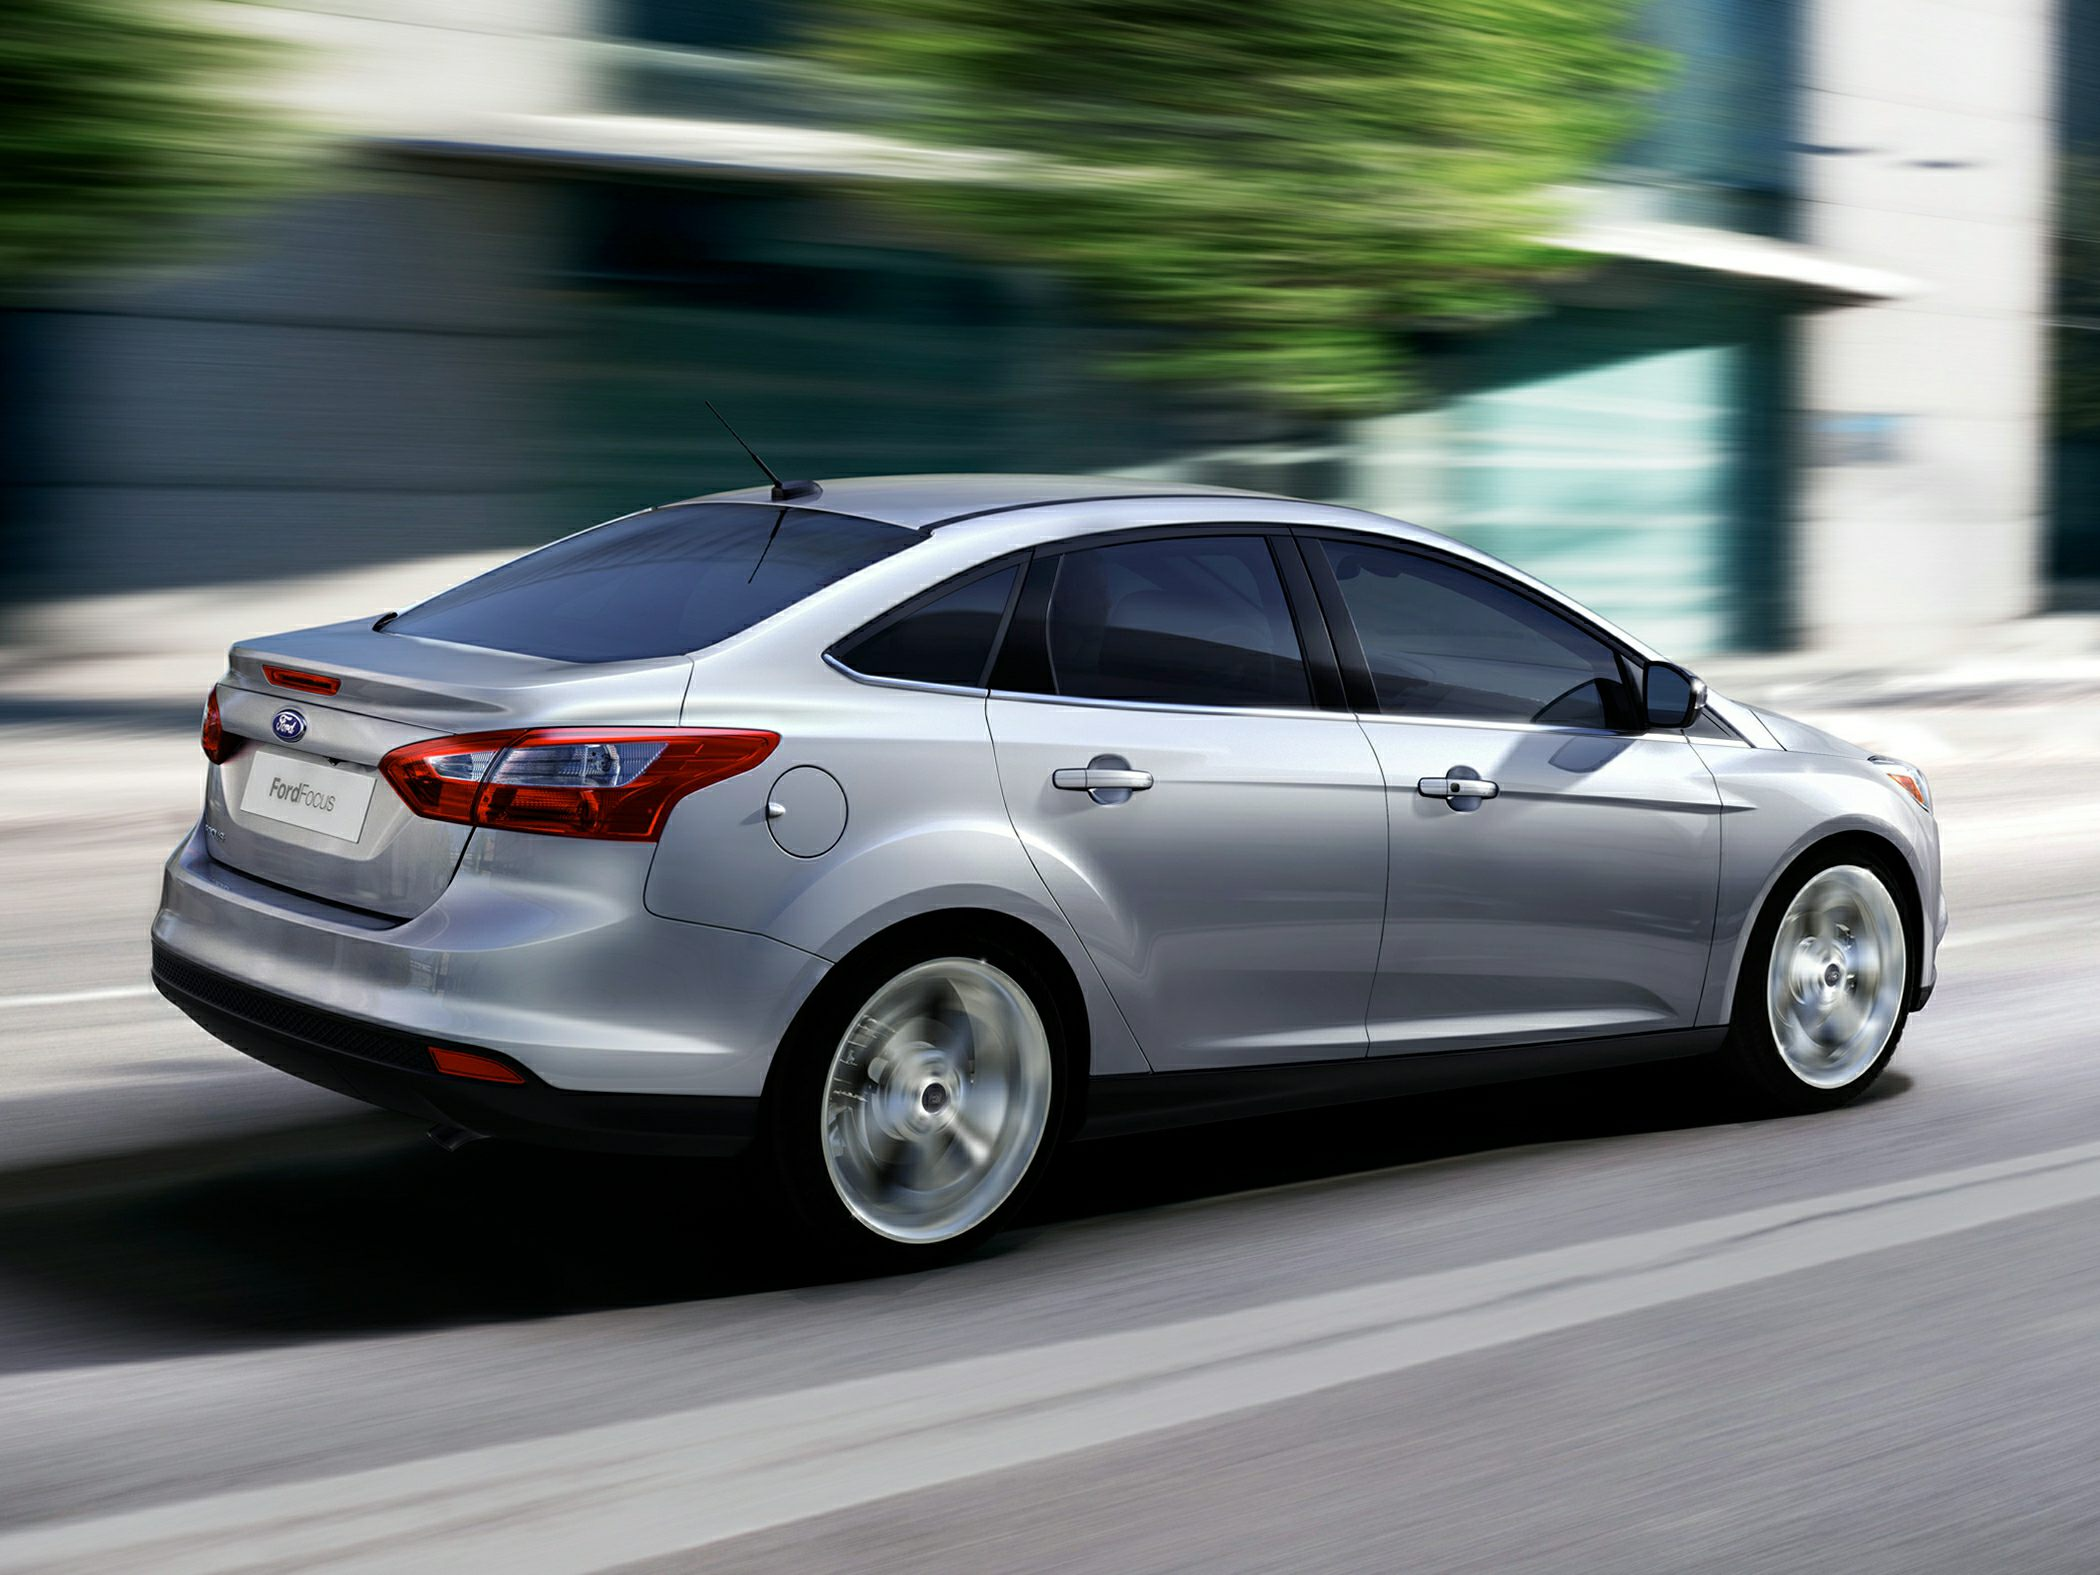 Focus Sedan 2014 All New Car Release And Reviews 2010 Ford Engine Diagram Image 12